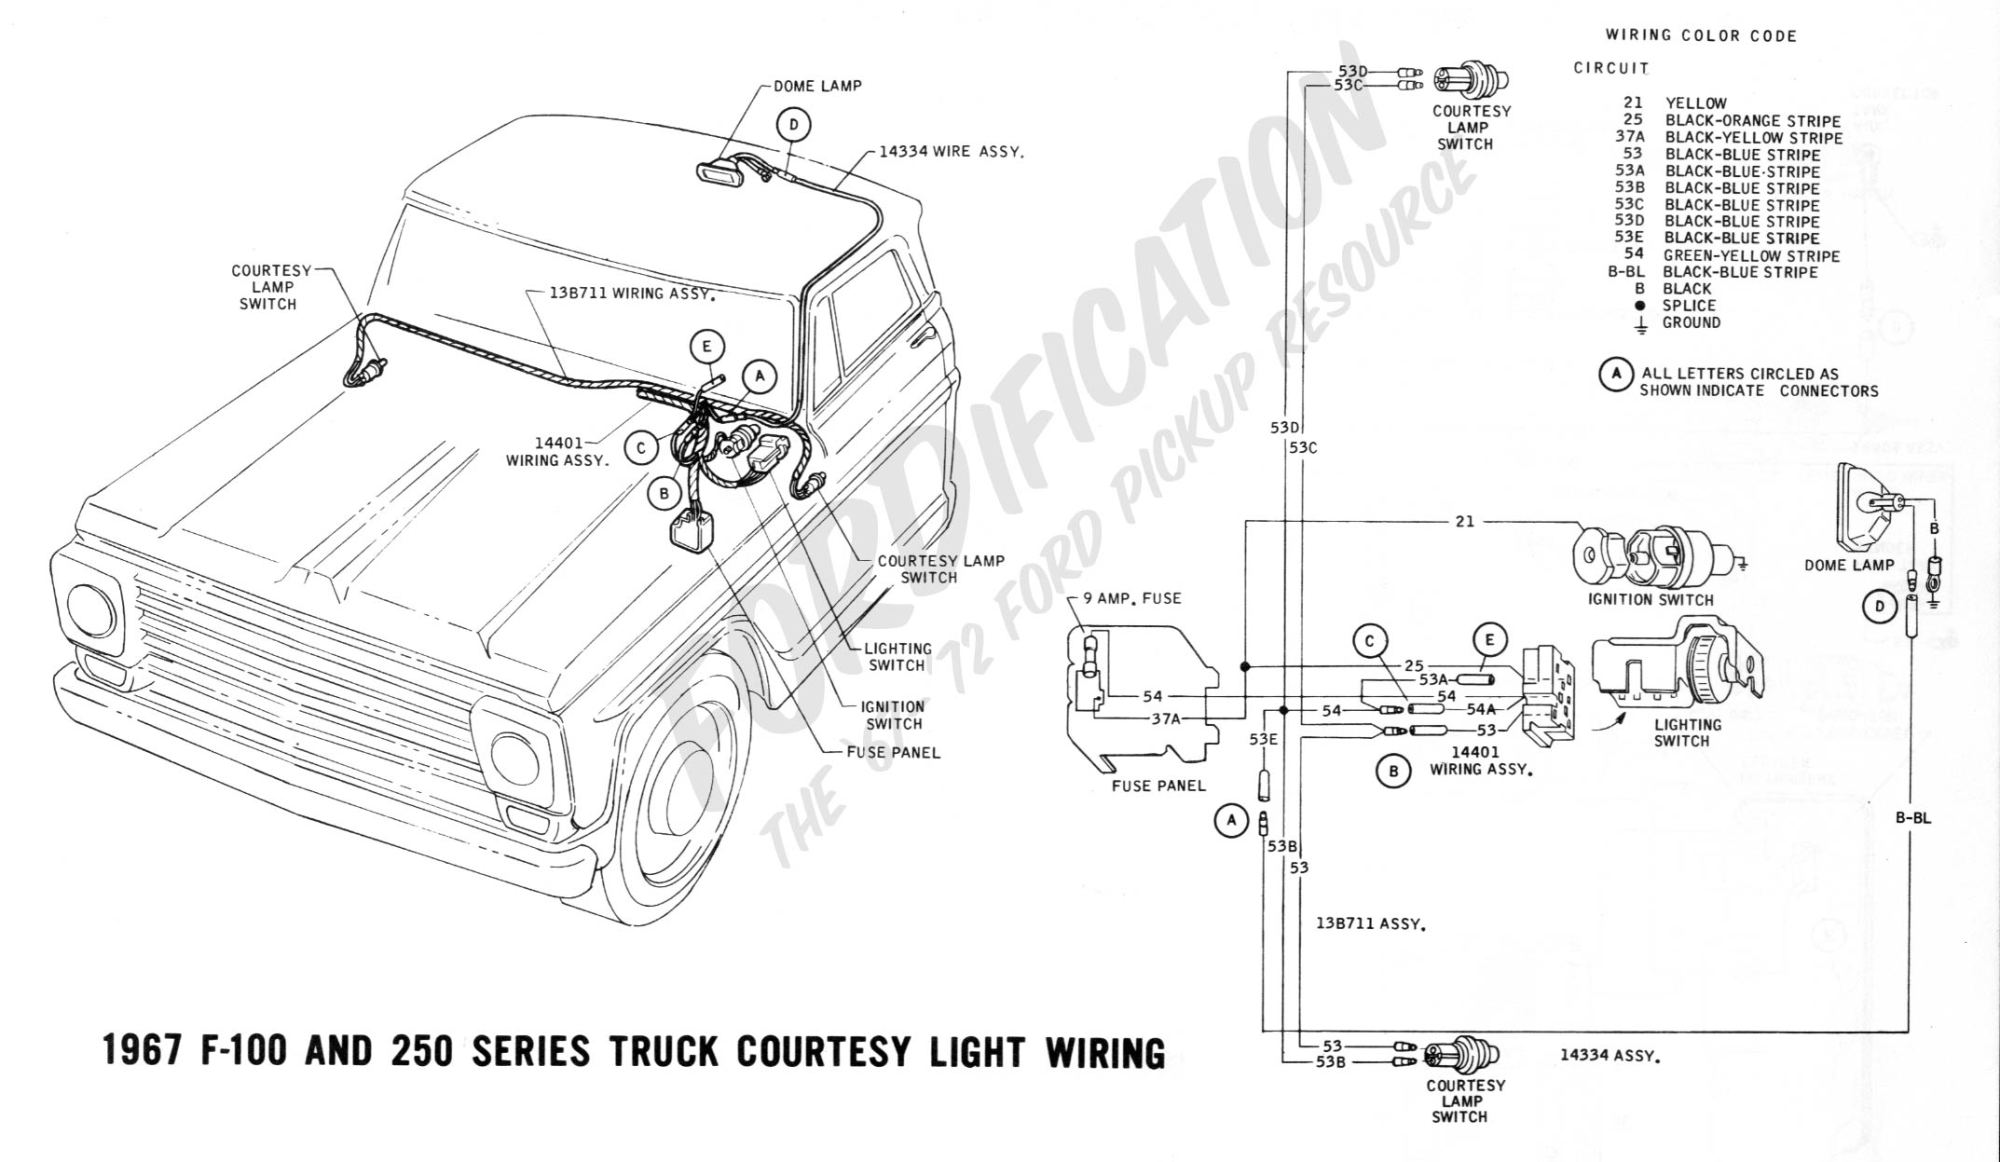 hight resolution of 1979 f 150 wiper switch wiring diagram 38 wiring diagram 1967 ford f100 ignition switch wiring diagram 1967 mustang ignition switch wiring diagram